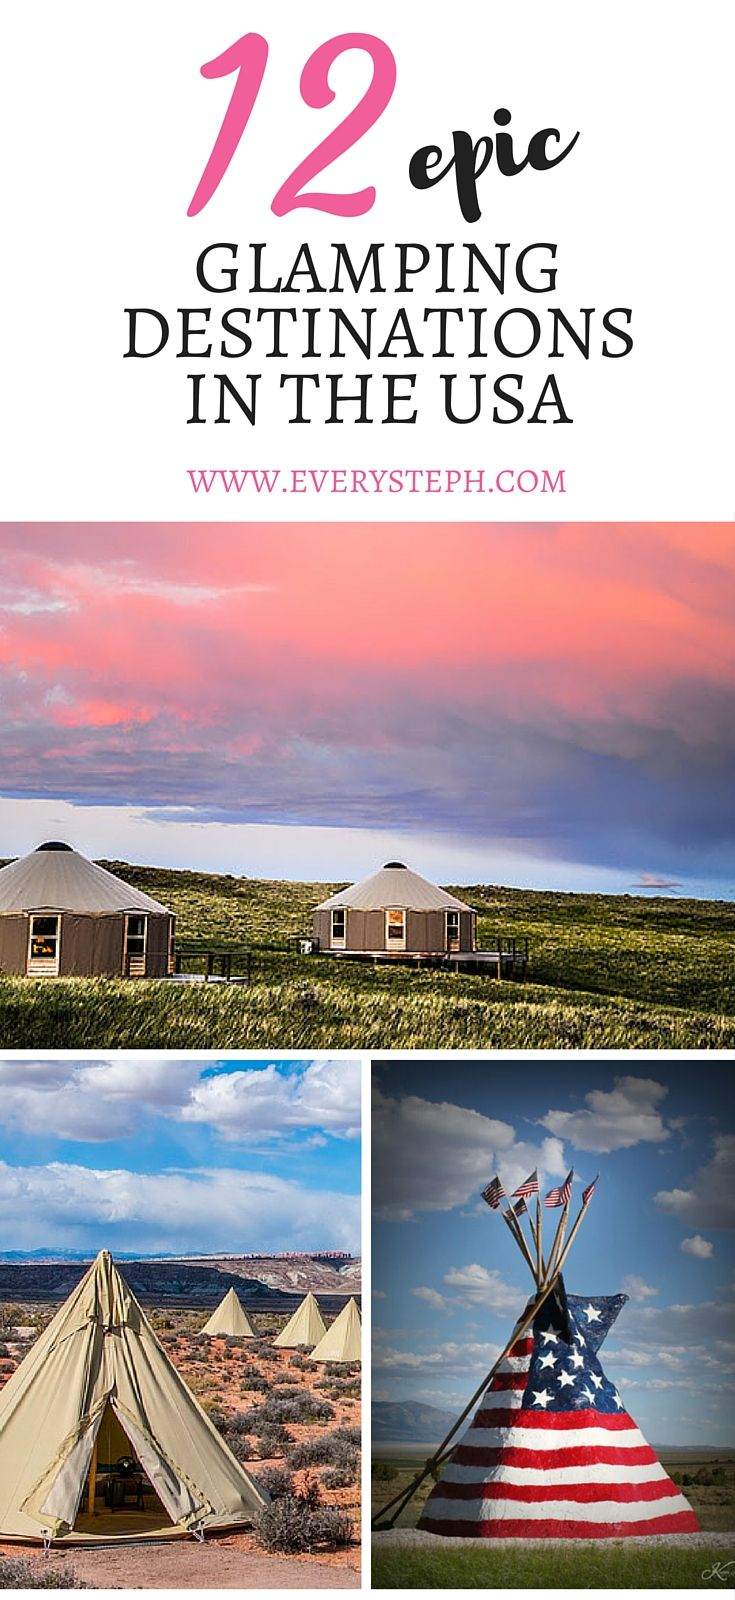 12 epic glamping destinations in the USA that will make you pack your bags right now! - Images by Moab Under Canvas, Sinya on Lone Man Creek, Absolute Travel  | Glamping in California | Glamping Ideas | Glamping travel | Glamping in Texas | Glamping in New York | Glamping in Florida